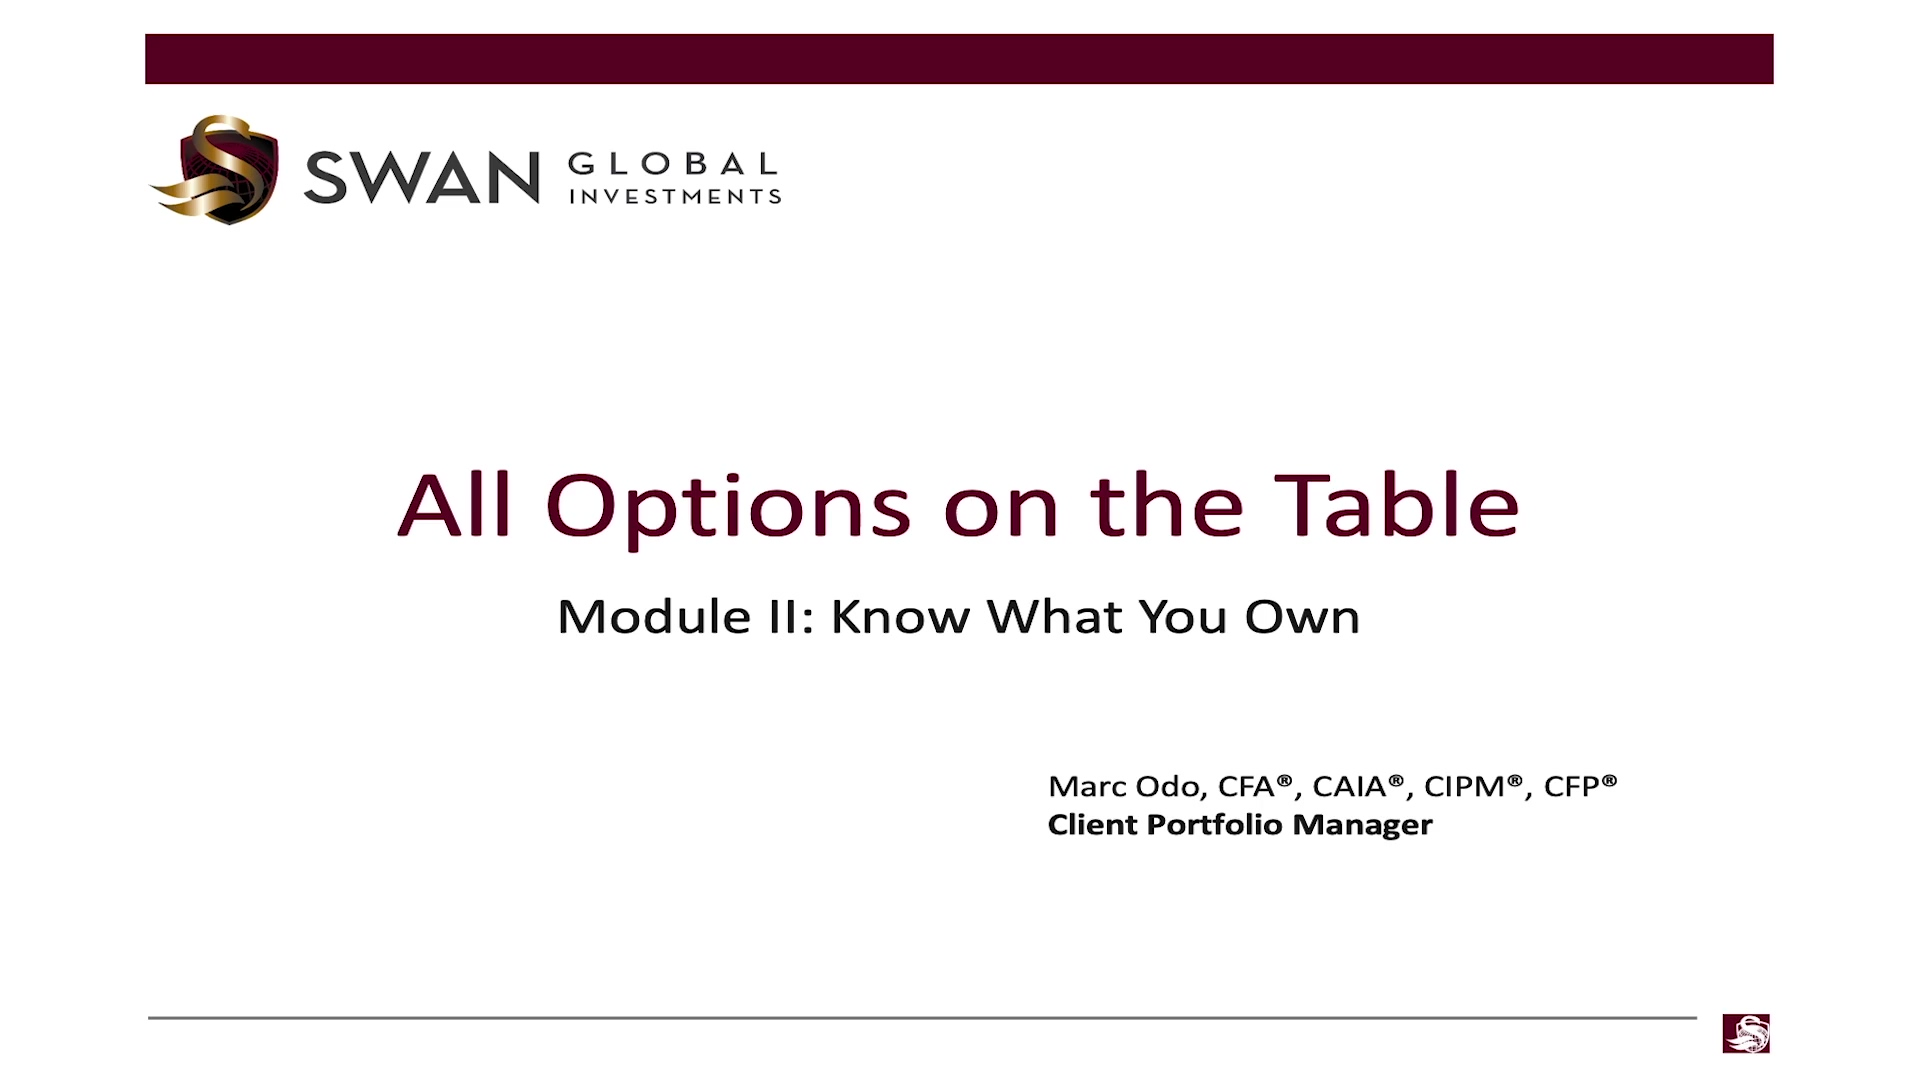 All Options on the Table - Module 02 - Know What You Own _ Swan Global Investments